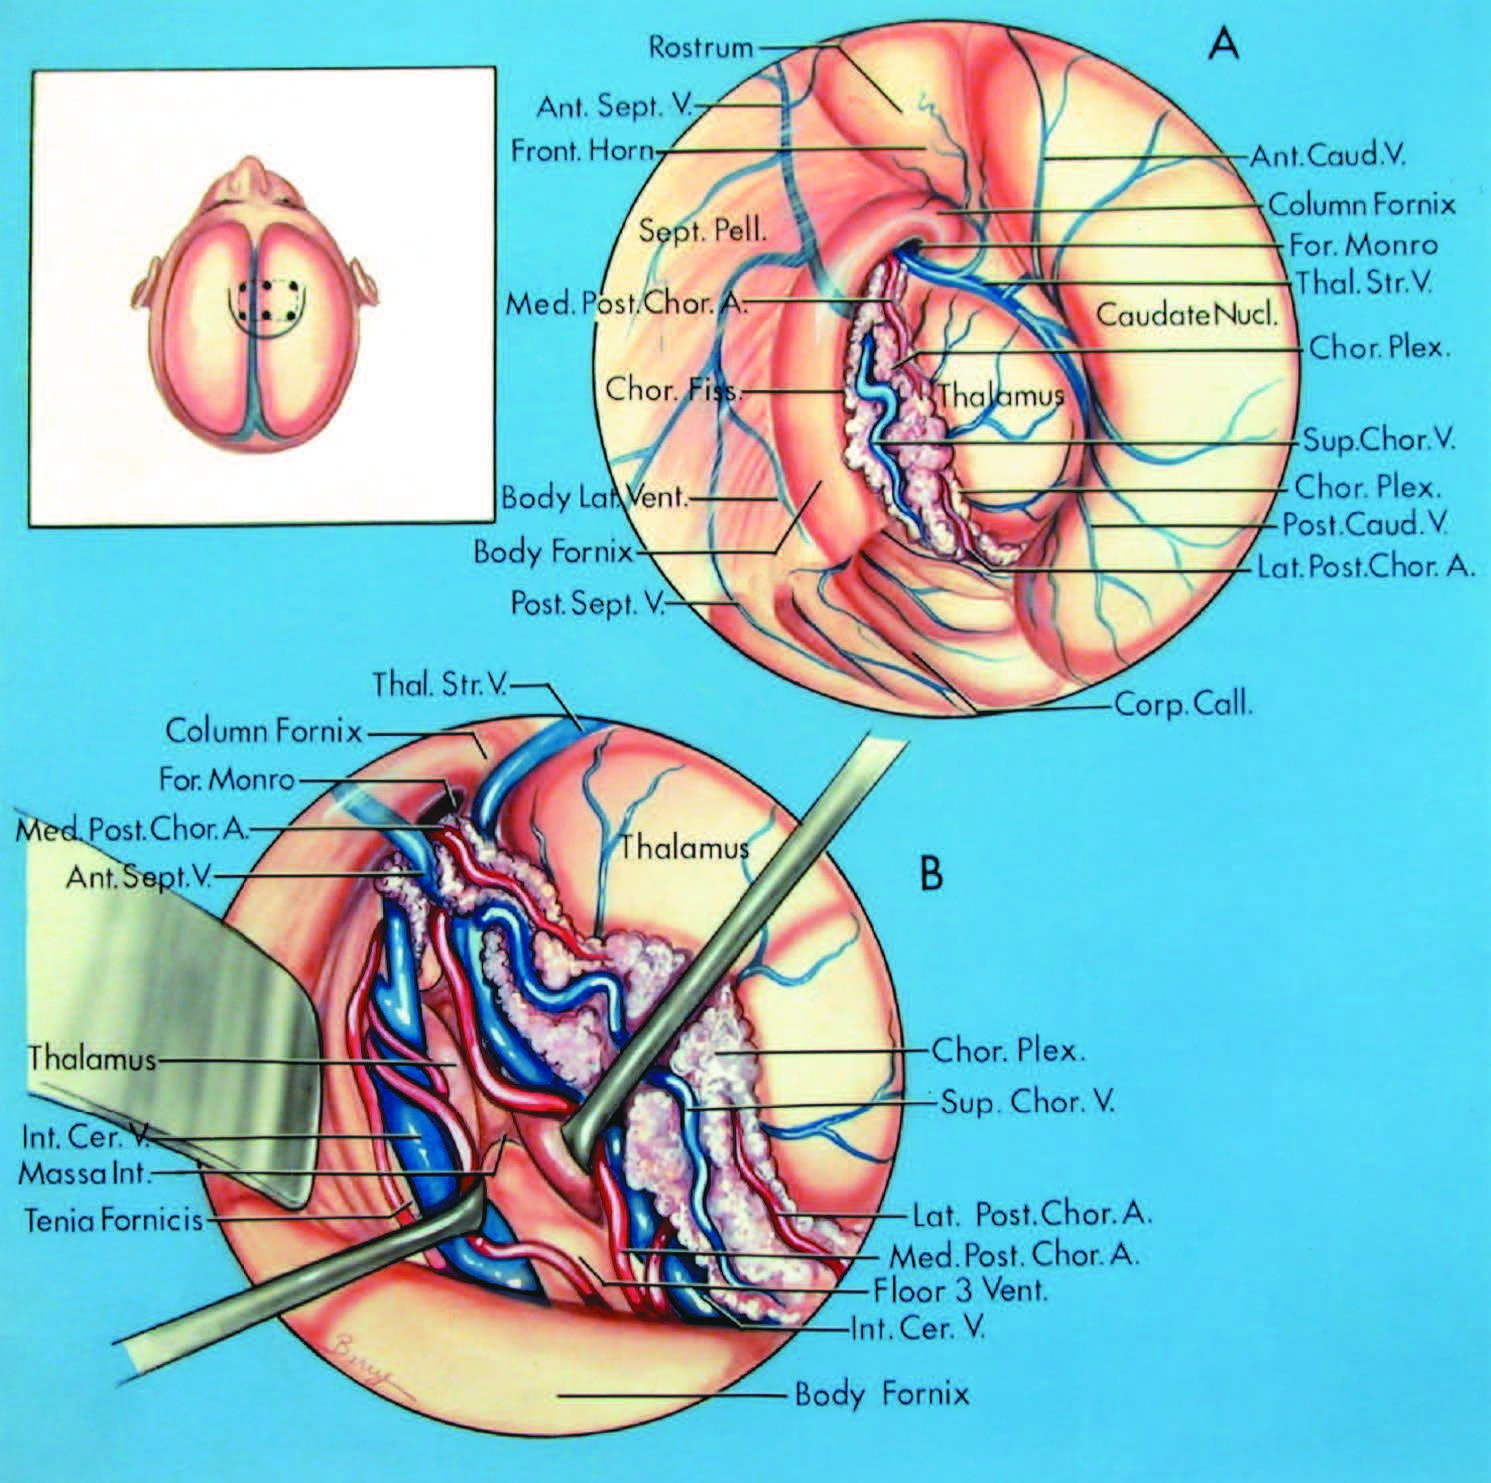 FIGURE 5.7. Transchoroidal approach directed through the body portion of the choroidal fissure using an opening through the corpus callosum. The site of the scalp incision and bone flap are shown in the inset. A, operative exposure of the frontal horn and body of the right lateral ventricle. The choroidal fissure lies deep to the choroid plexus. Structures in the wall of the lateral ventricle include the thalamus, caudate nucleus fornix, foramen of Monro, septum pellucidum, and the rostrum of the corpus callosum. Vascular structures that converge on the choroidal fissure include the medial and lateral posterior choroidal arteries and the anterior and posterior septal, anterior and posterior caudate, superior choroidal, and thalamostriate veins. B, the choroidal fissure has been opened by incising along the tenia fornicis. The layers of tela choroidea in the roof of the third ventricle have been opened and the massa intermedia and interior and floor of the third ventricle have been exposed by separating the internal cerebral veins. The medial posterior choroidal arteries course around the internal cerebral veins. A., artery; Ant., anterior; Call., callosum; Caud., caudate; Cer., cerebral; Chor., choroid, choroidal; Fiss., fissure; For., foramen; Front., frontal; Int., intermedia, internal; Lat., lateral; Med., medial; Nucl., nucleus; Pell., pellucidum; Plex., plexus; Post., posterior; Sept., septal, septum; Sup., superior; Thal. Str., thalamostriate; V., vein; Vent., ventricle. (From, Nagata S, Rhoton AL Jr, Barry M: Microsurgical anatomy of the choroidal fissure. Surg Neurol 30:3–59, 1988 [15].)